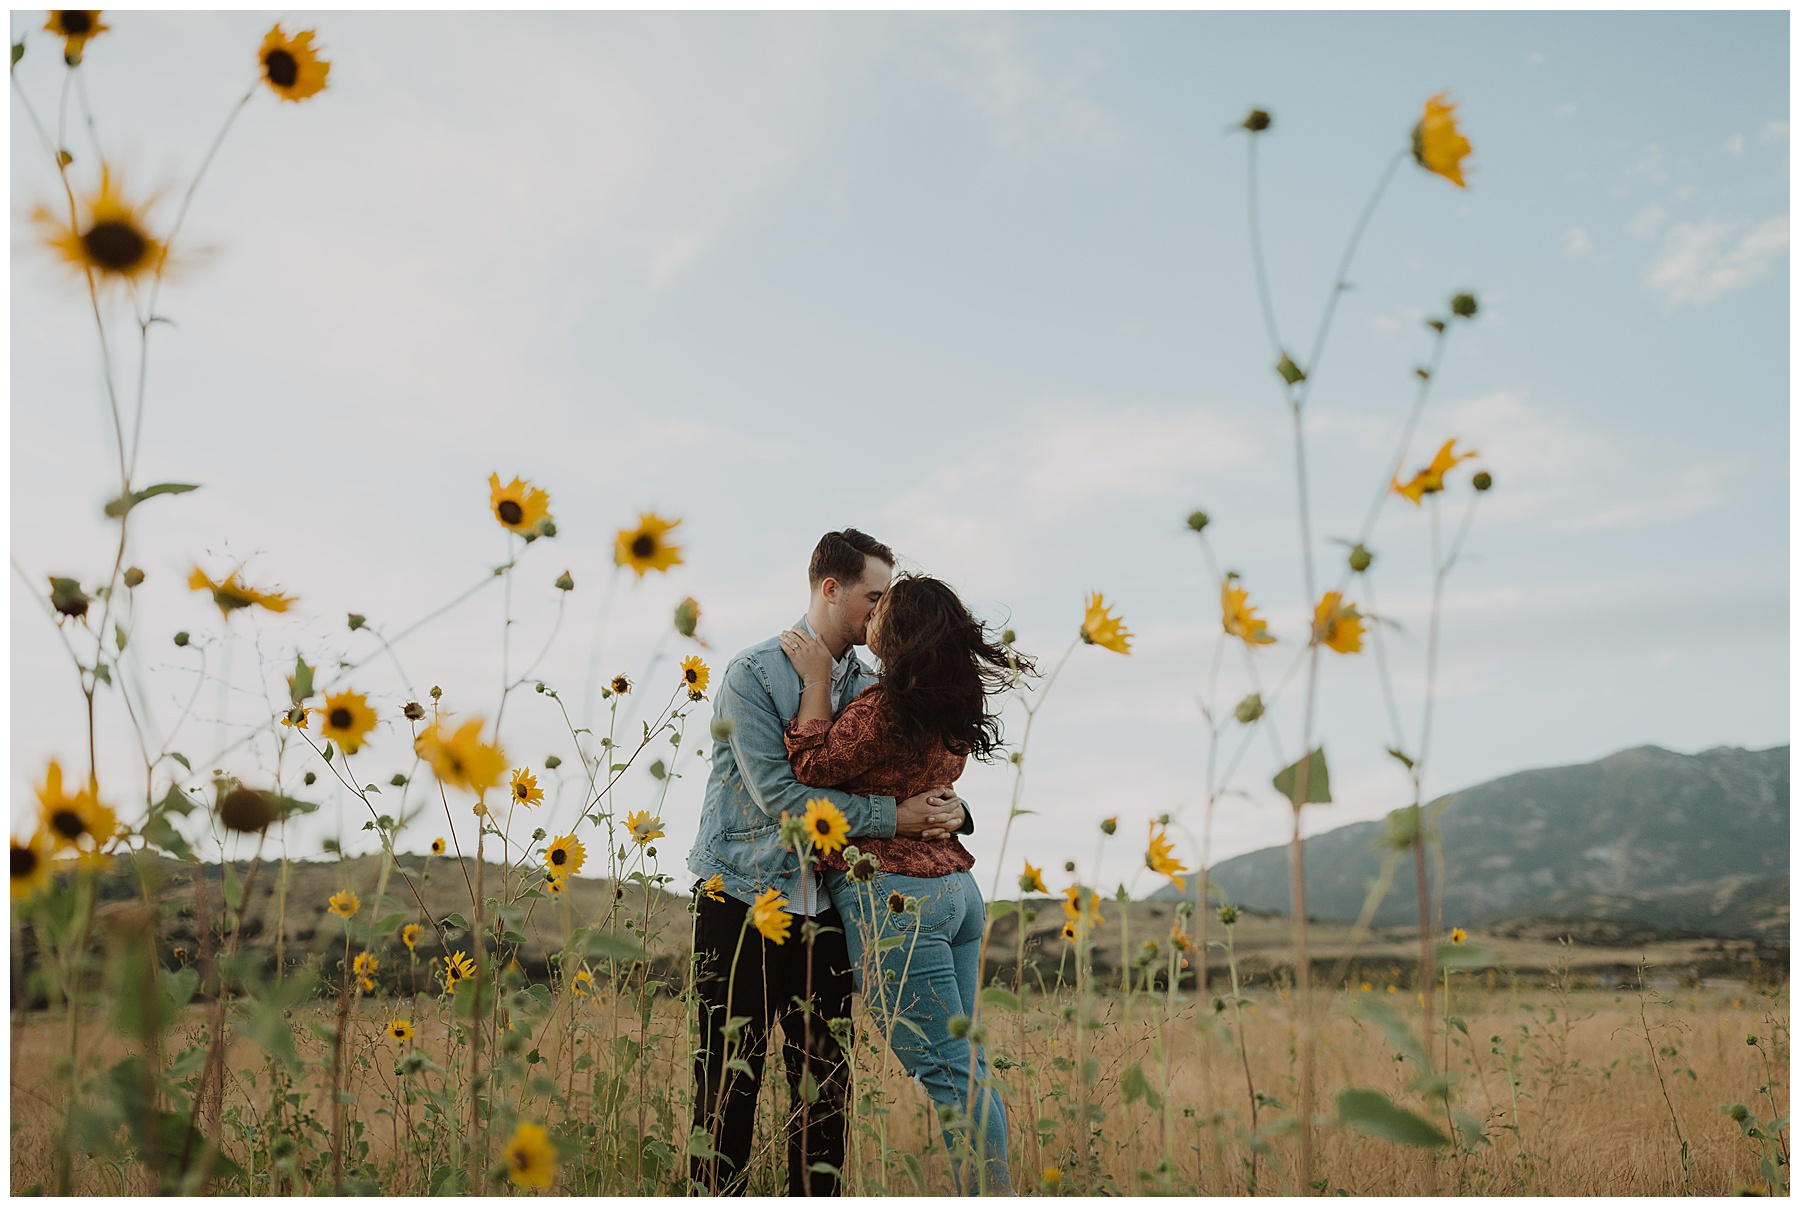 Couple kissing with sunflowers in a yellow field